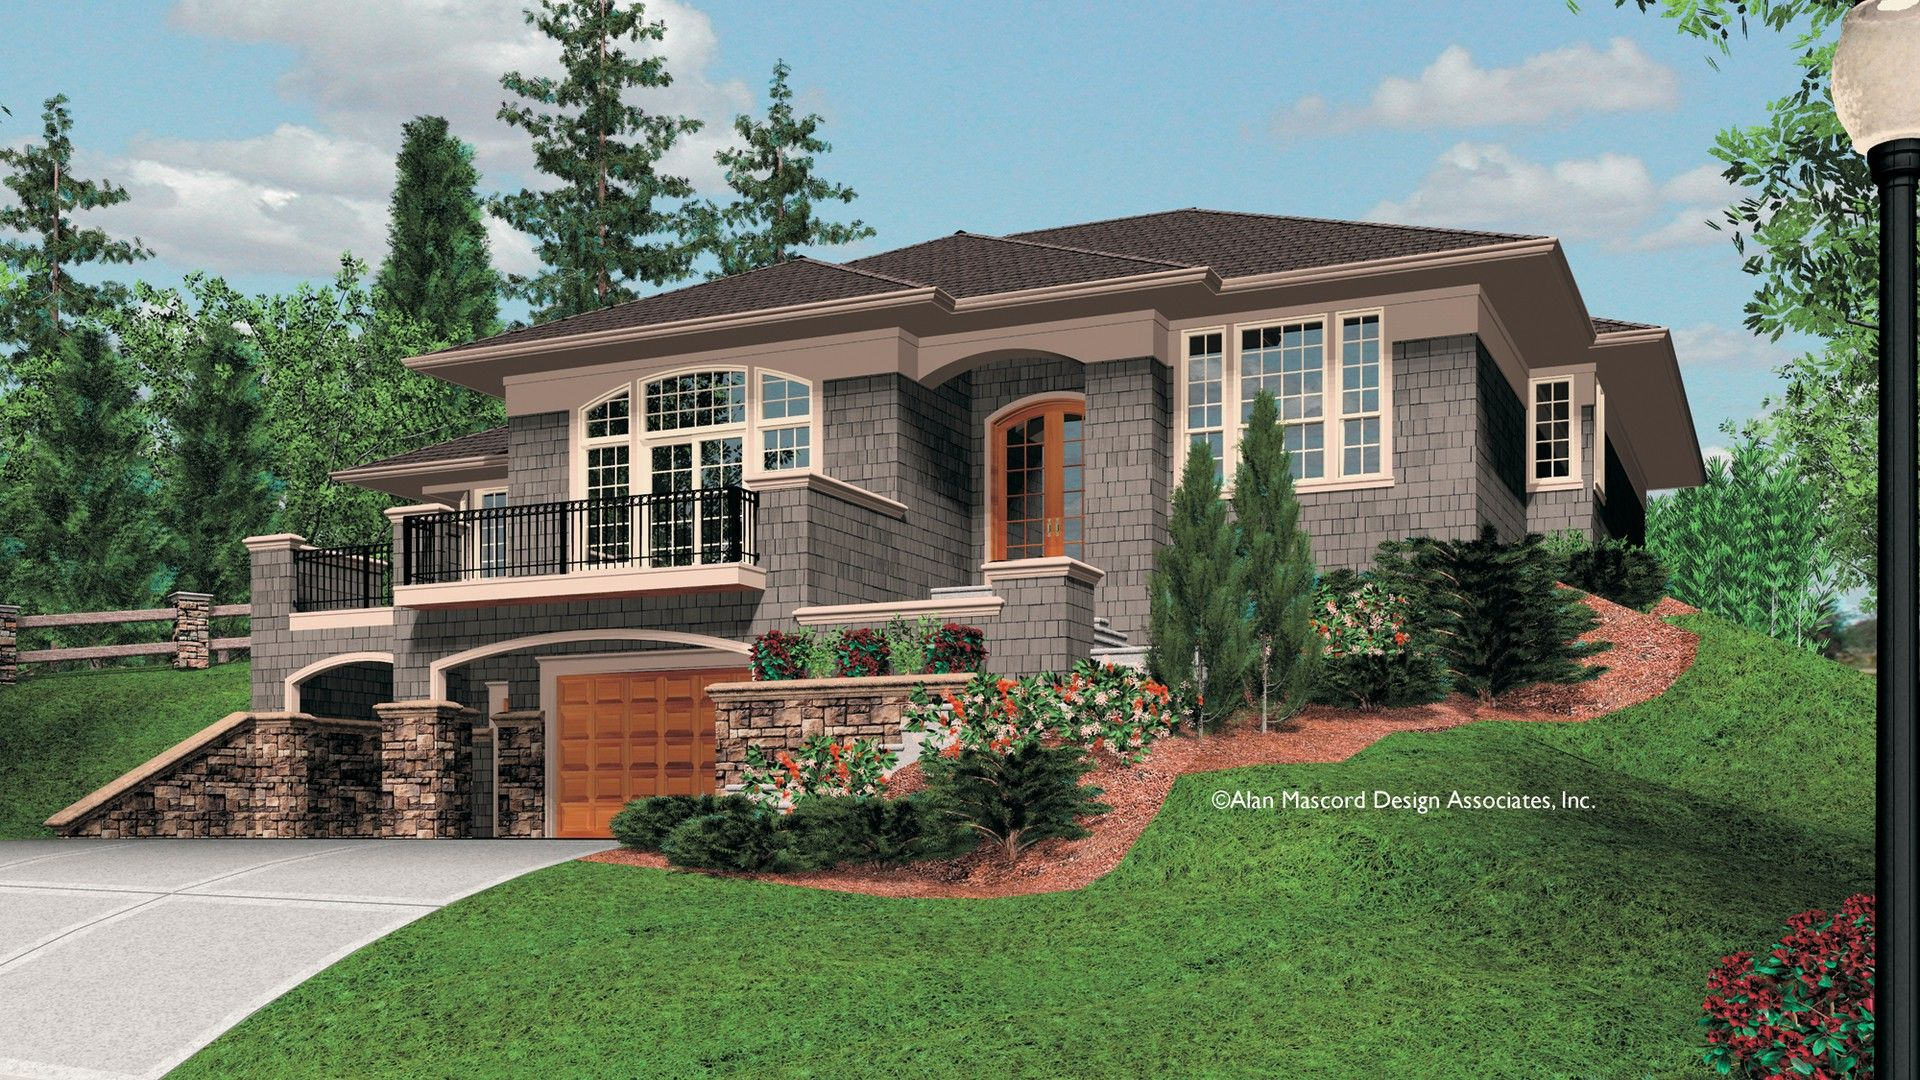 Basement Garage With Balcony Above Sloping Lot House Plan Basement House Plans Mediterranean House Plans